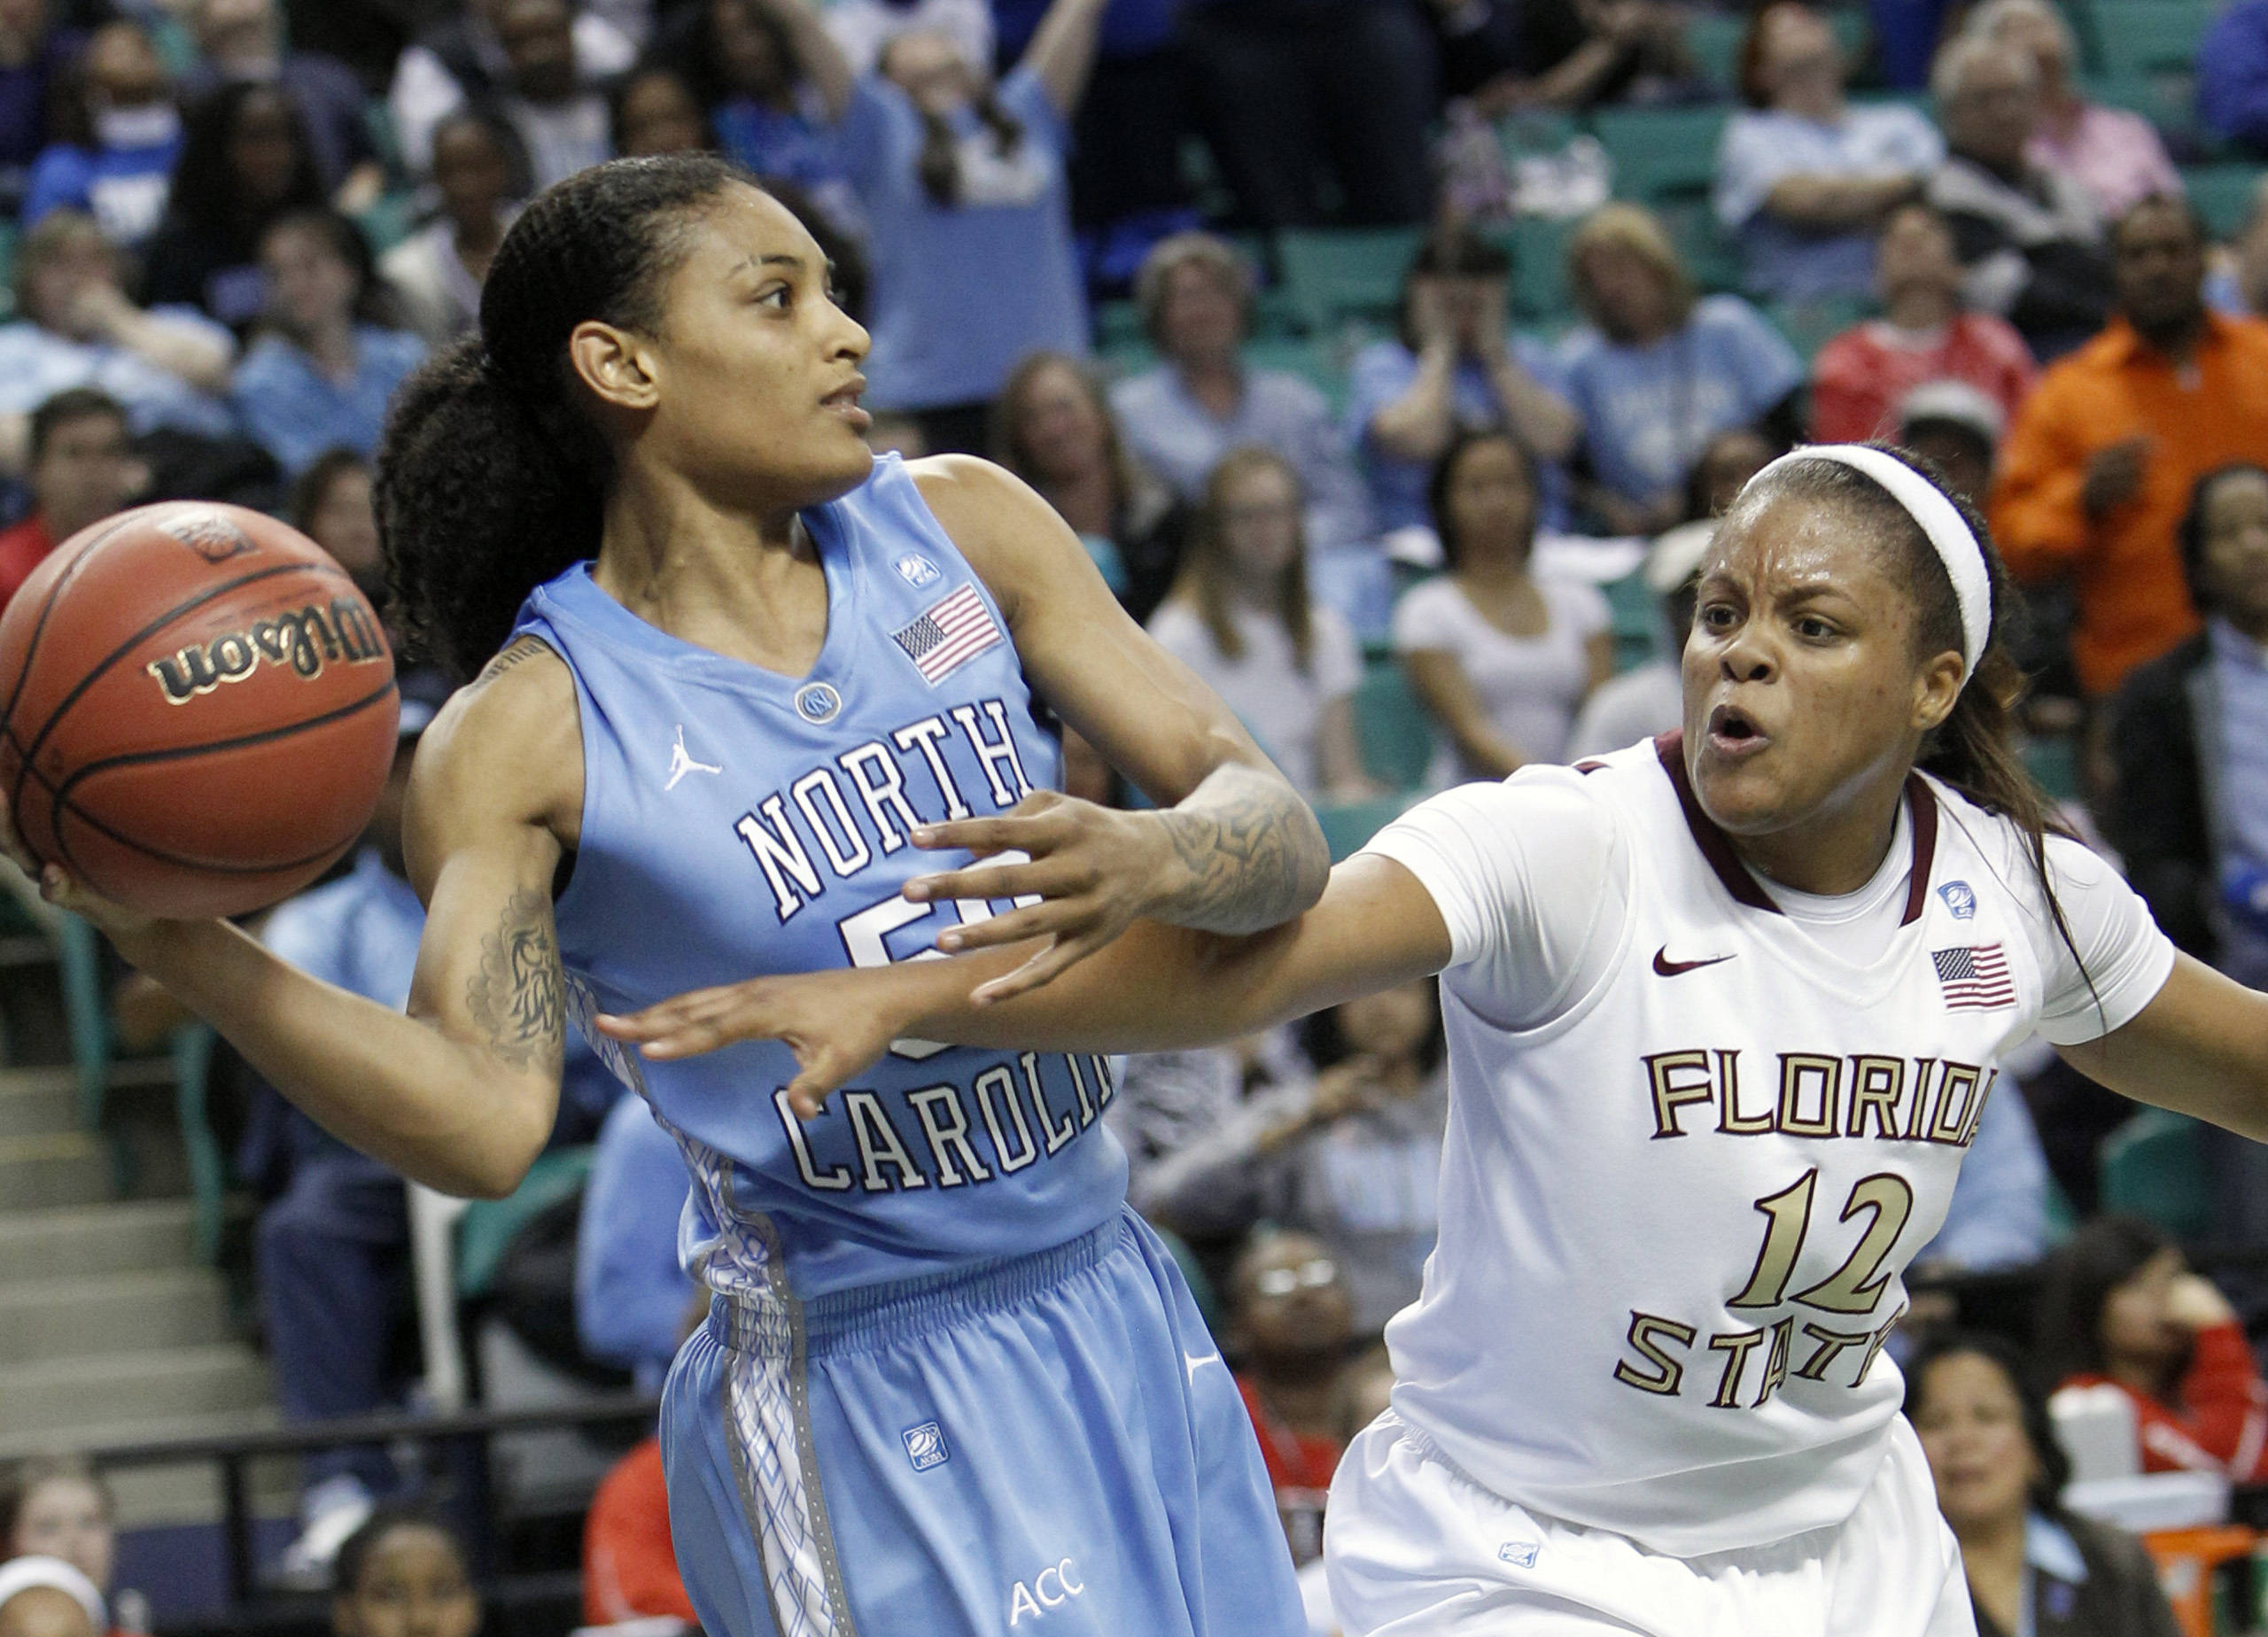 North Carolina's Italee Lucas keeps the ball from Florida State's Courtney Ward  in the second half. (AP Photo/Chuck Burton)